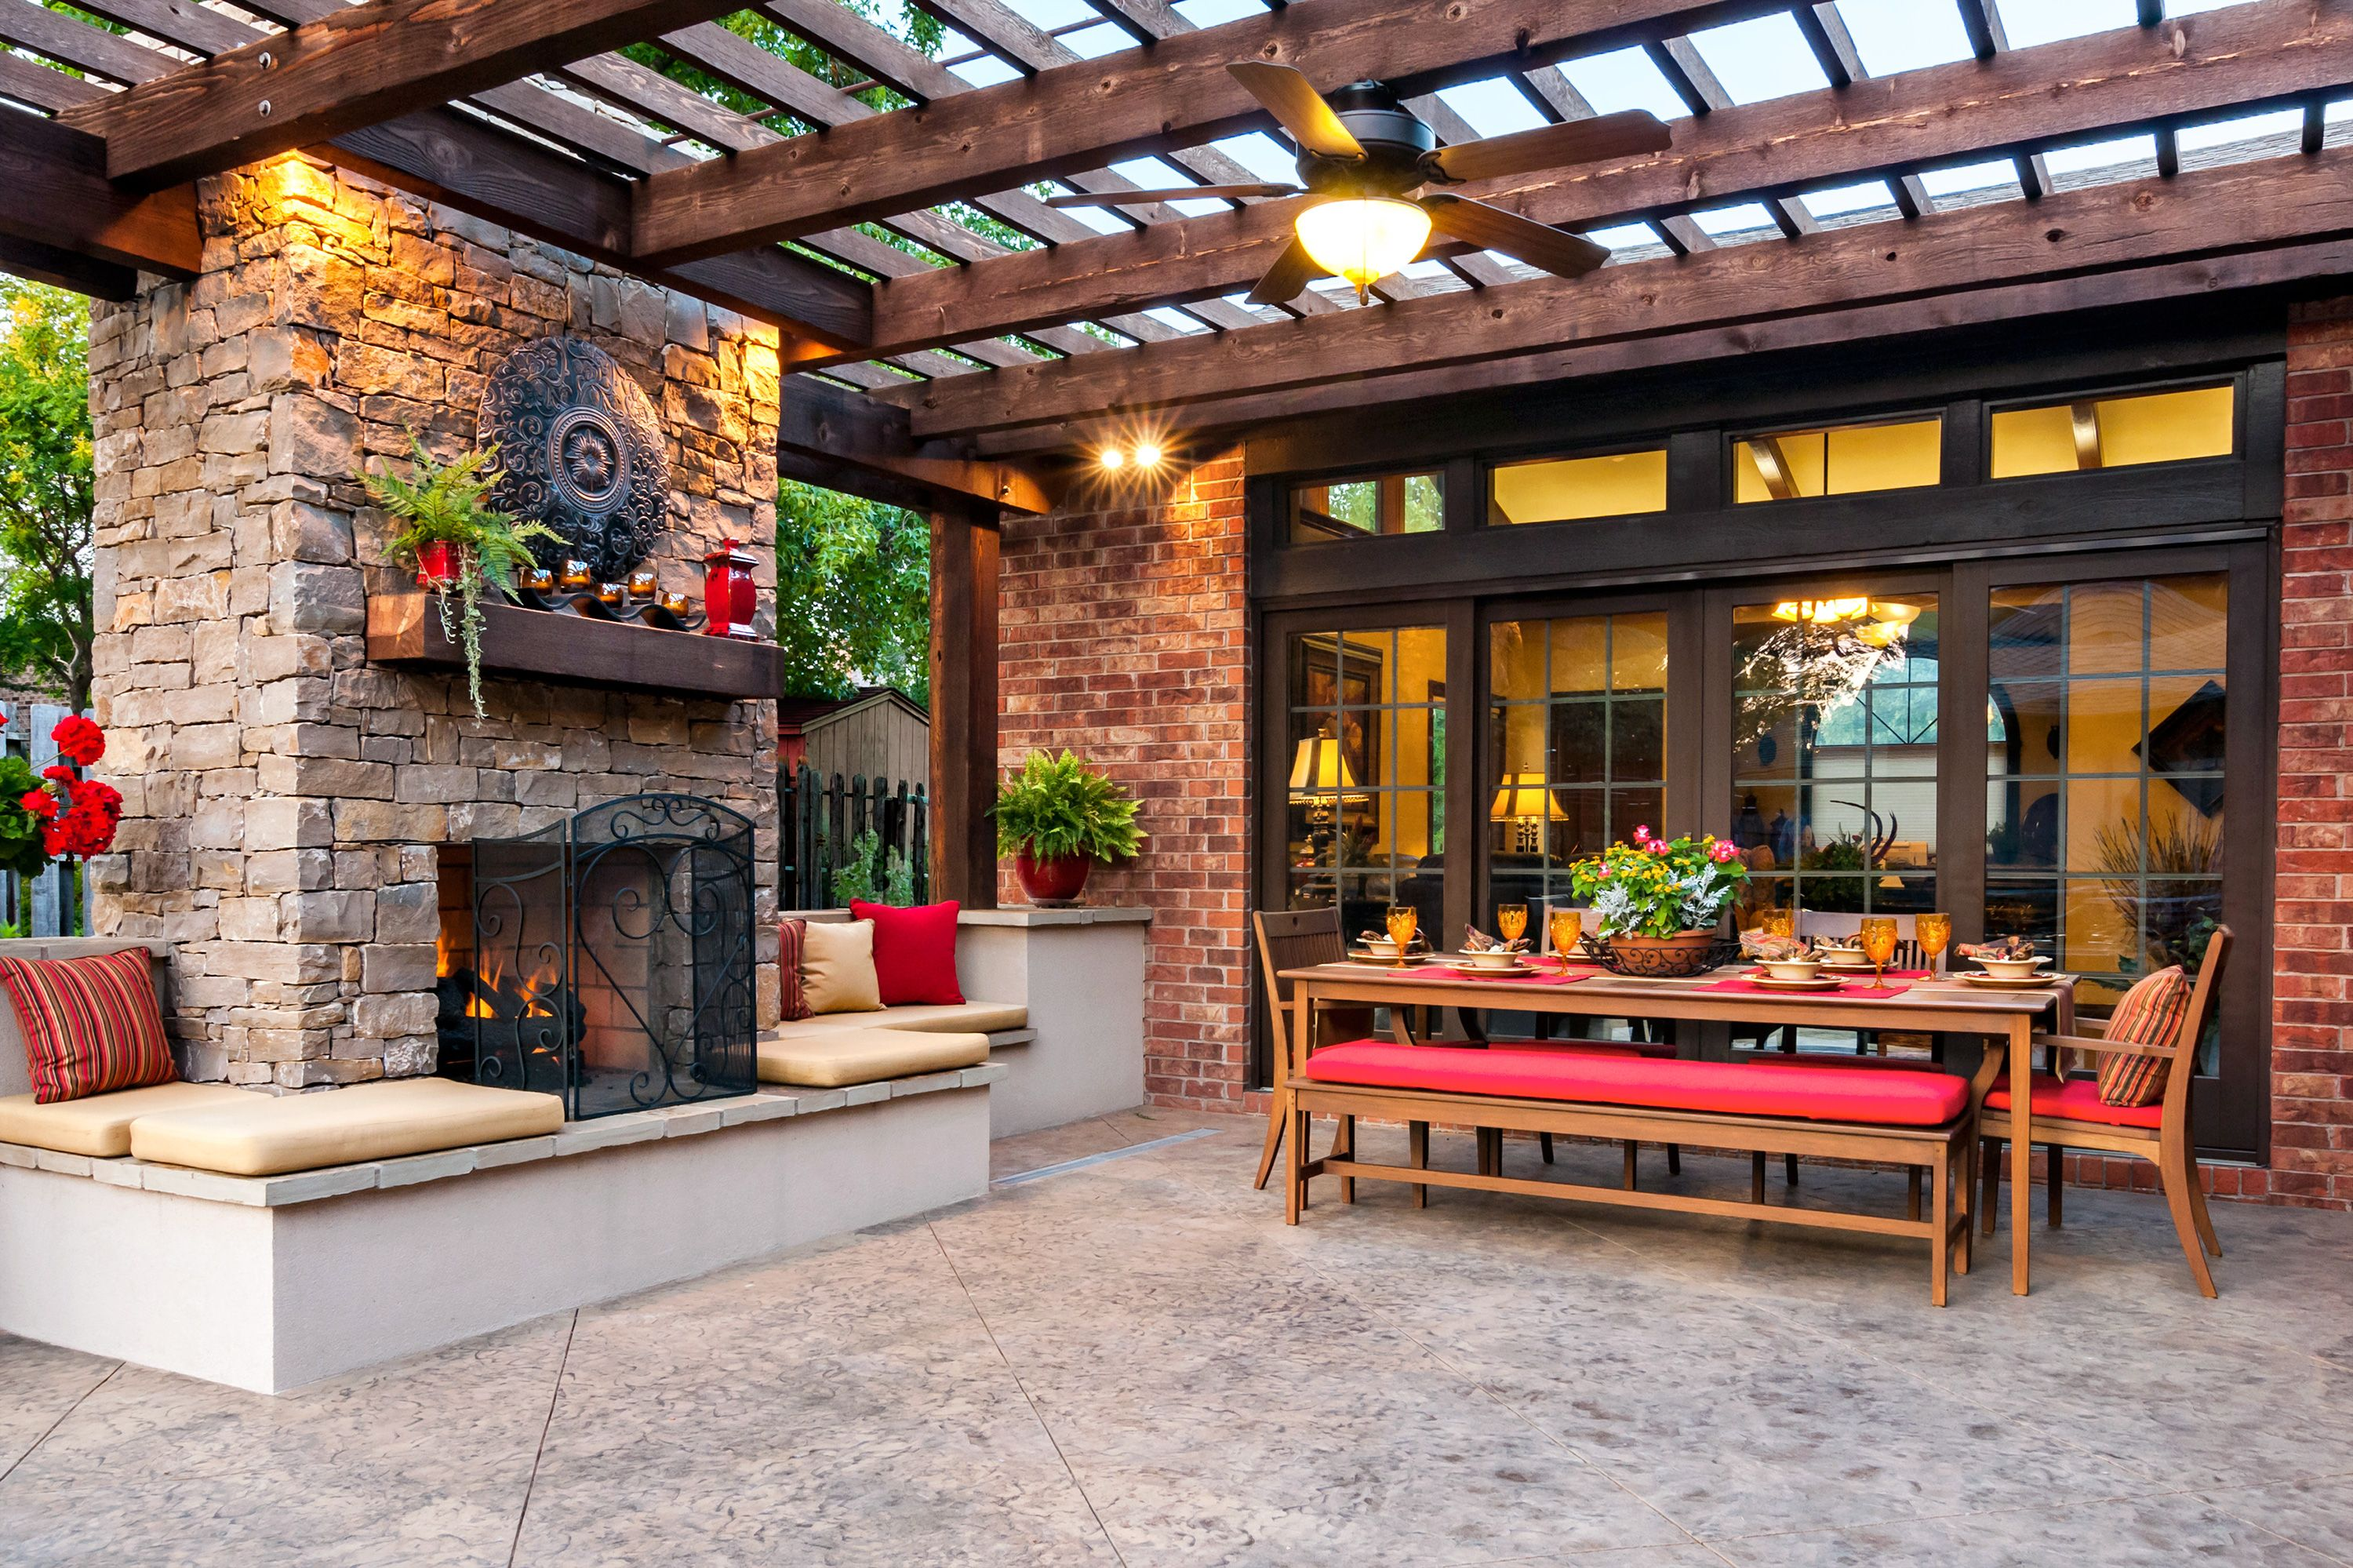 42 ideas for the perfect outdoor space fireplace kits cozy